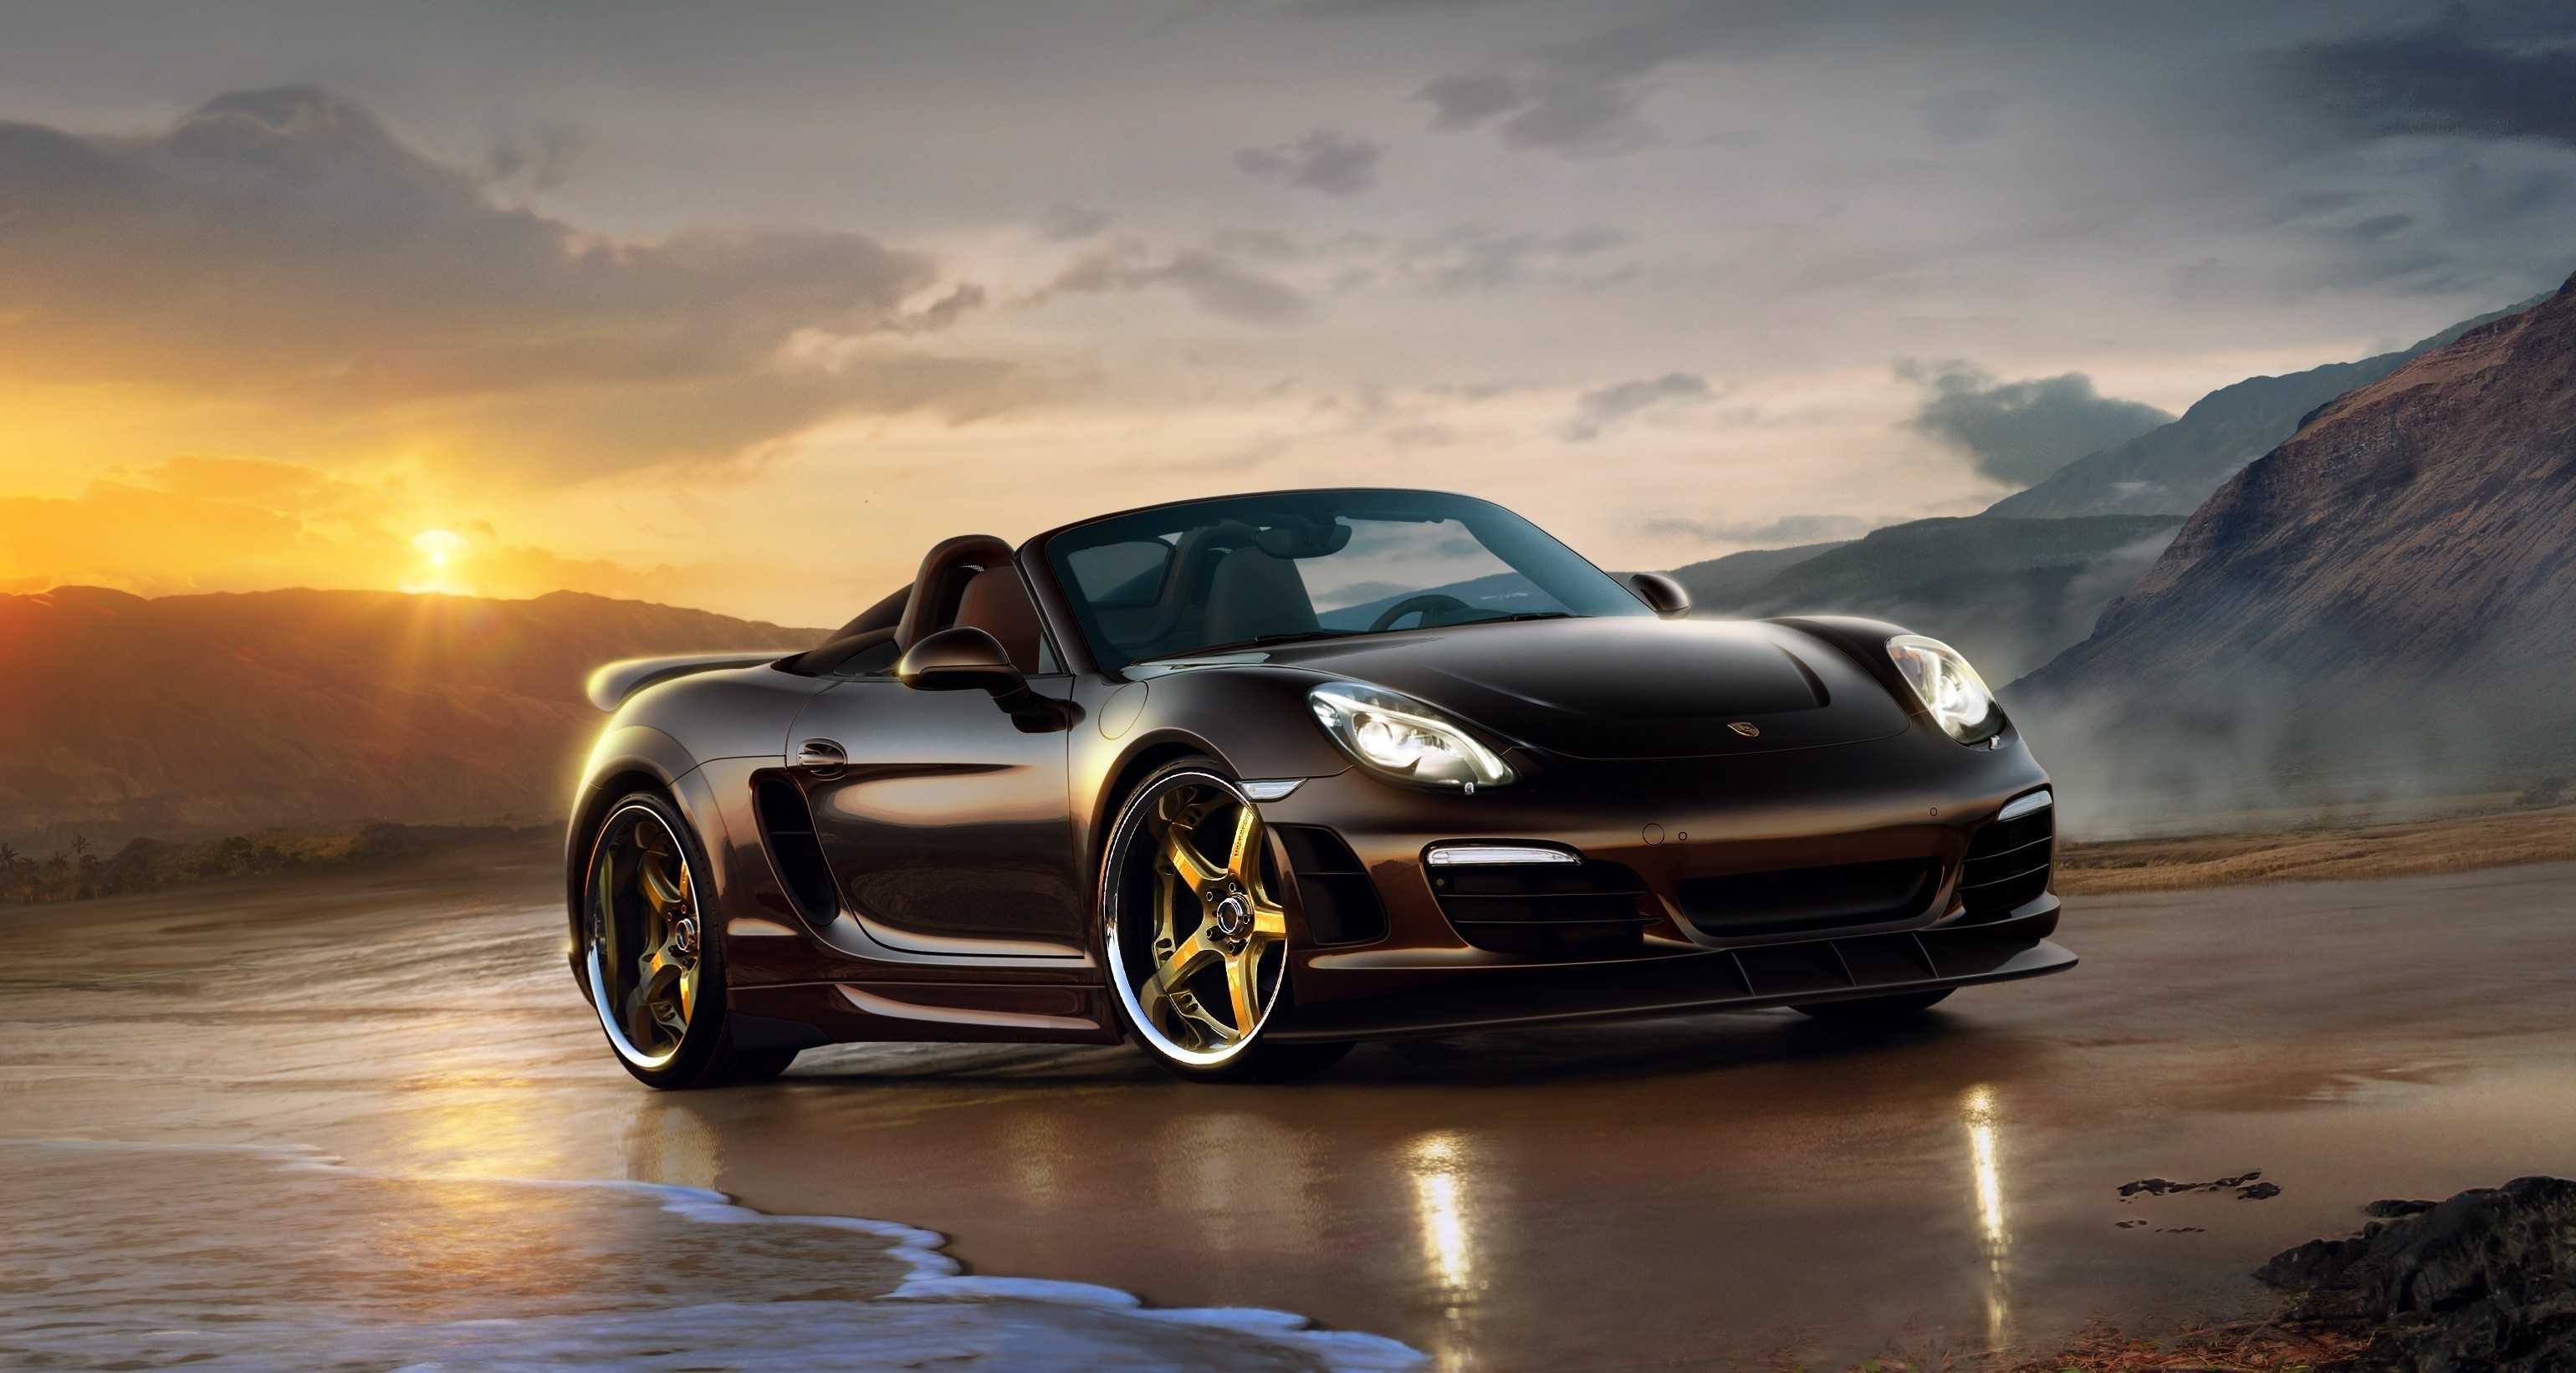 Porsche full hd wallpaper and hintergrund 3080x1642 id - Porche para autos ...